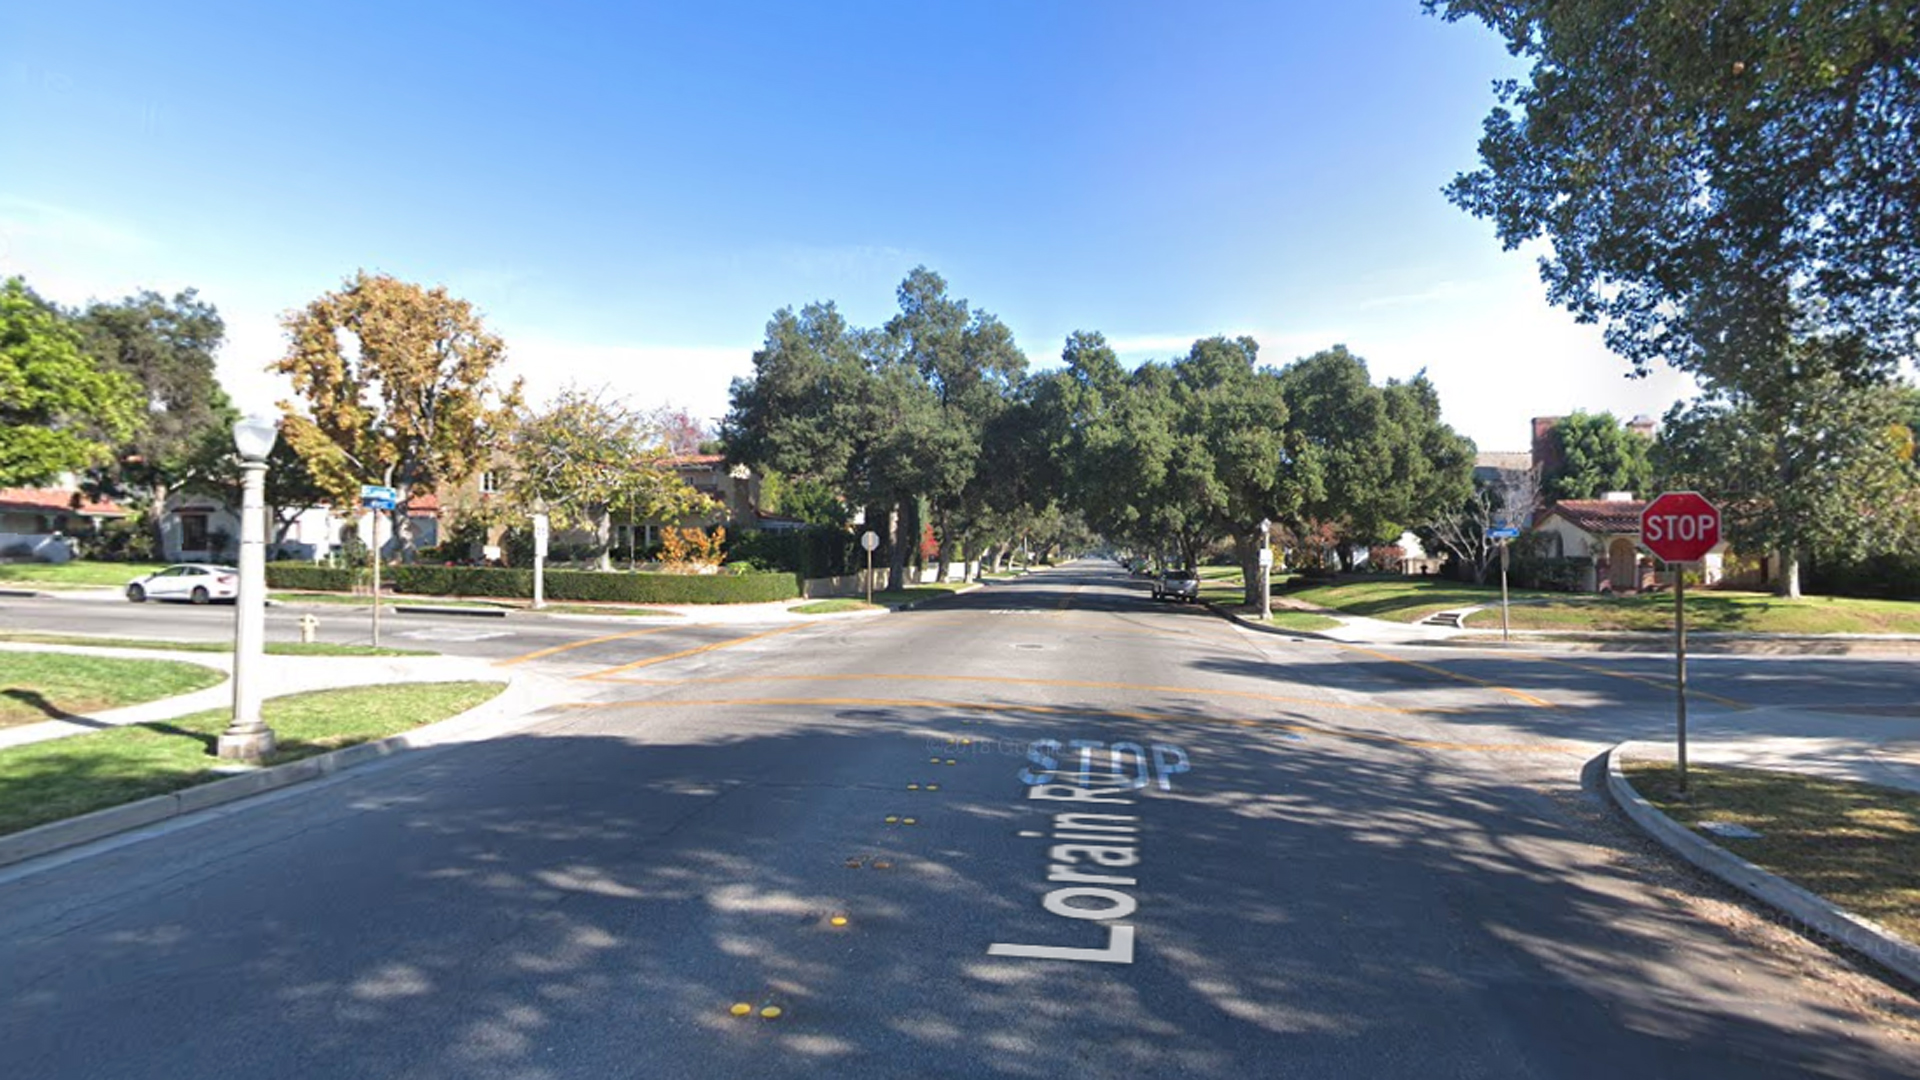 The intersection of Mission Drive and Lorain Road in San Marino, as pictured in a Google Street View image.